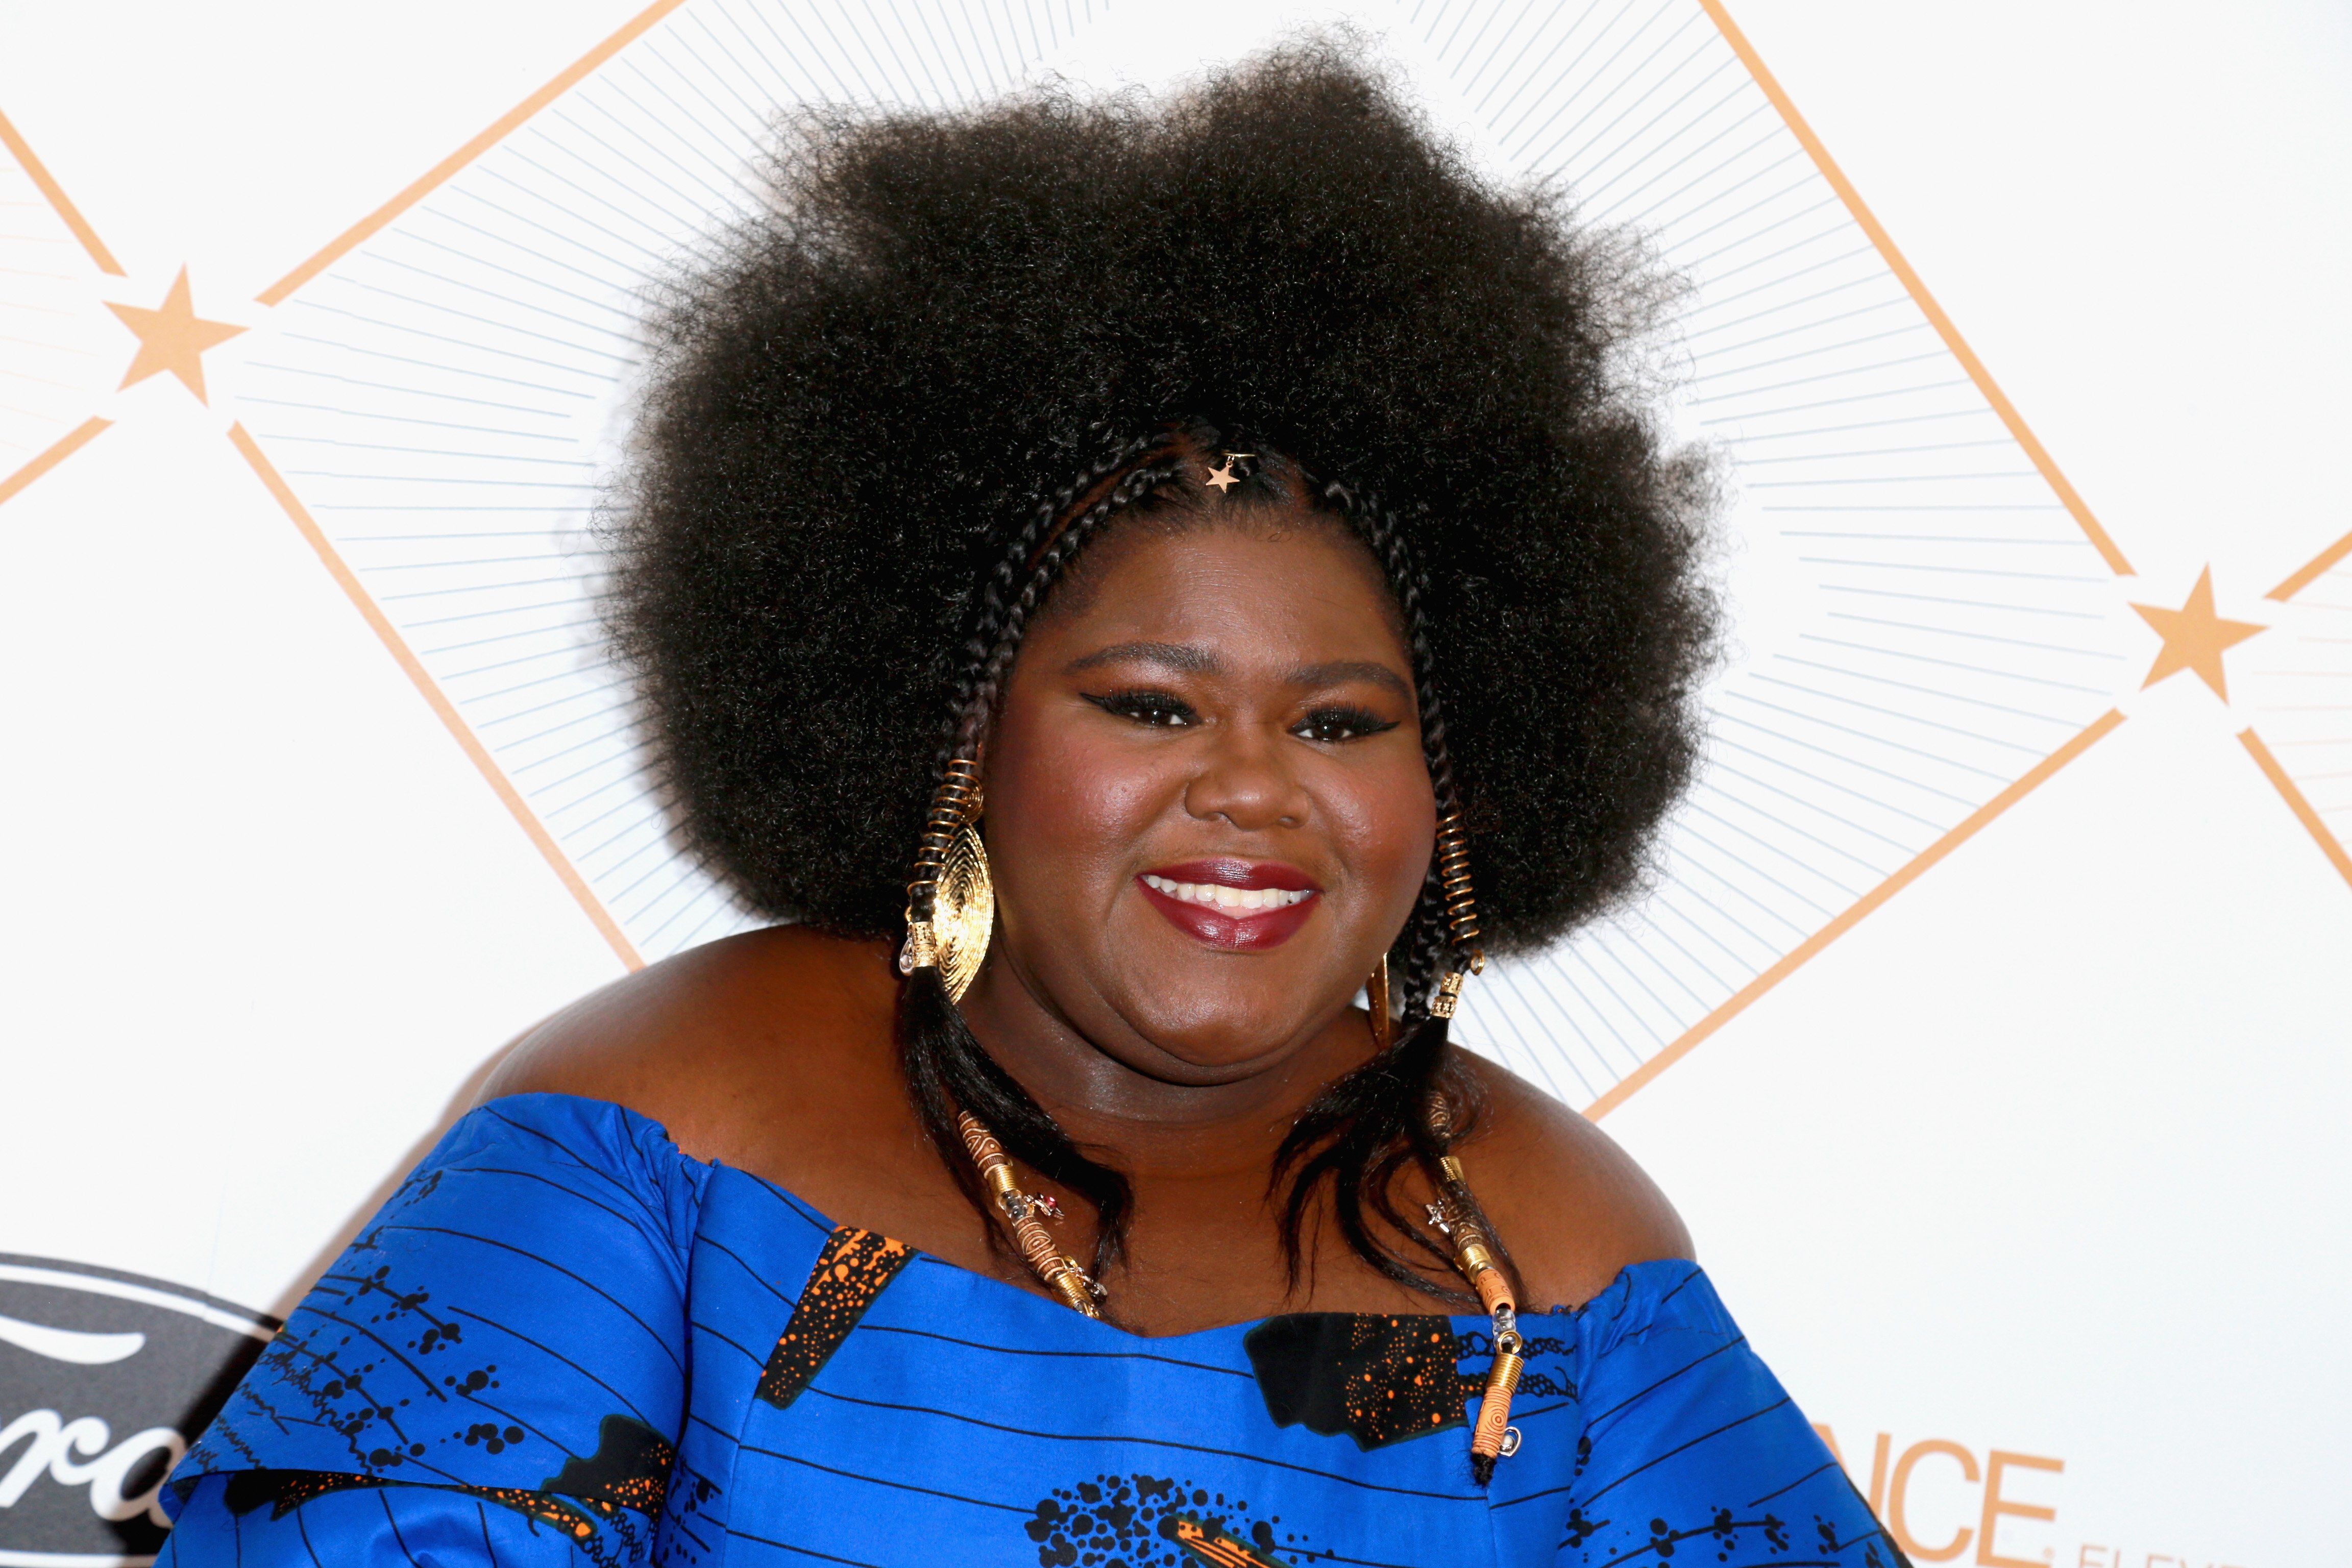 Gabourey Sidibe pictured at the 2018 Essence Black Women In Hollywood Oscars Luncheon on Mar. 1, 2018 in California | Source: Getty Images